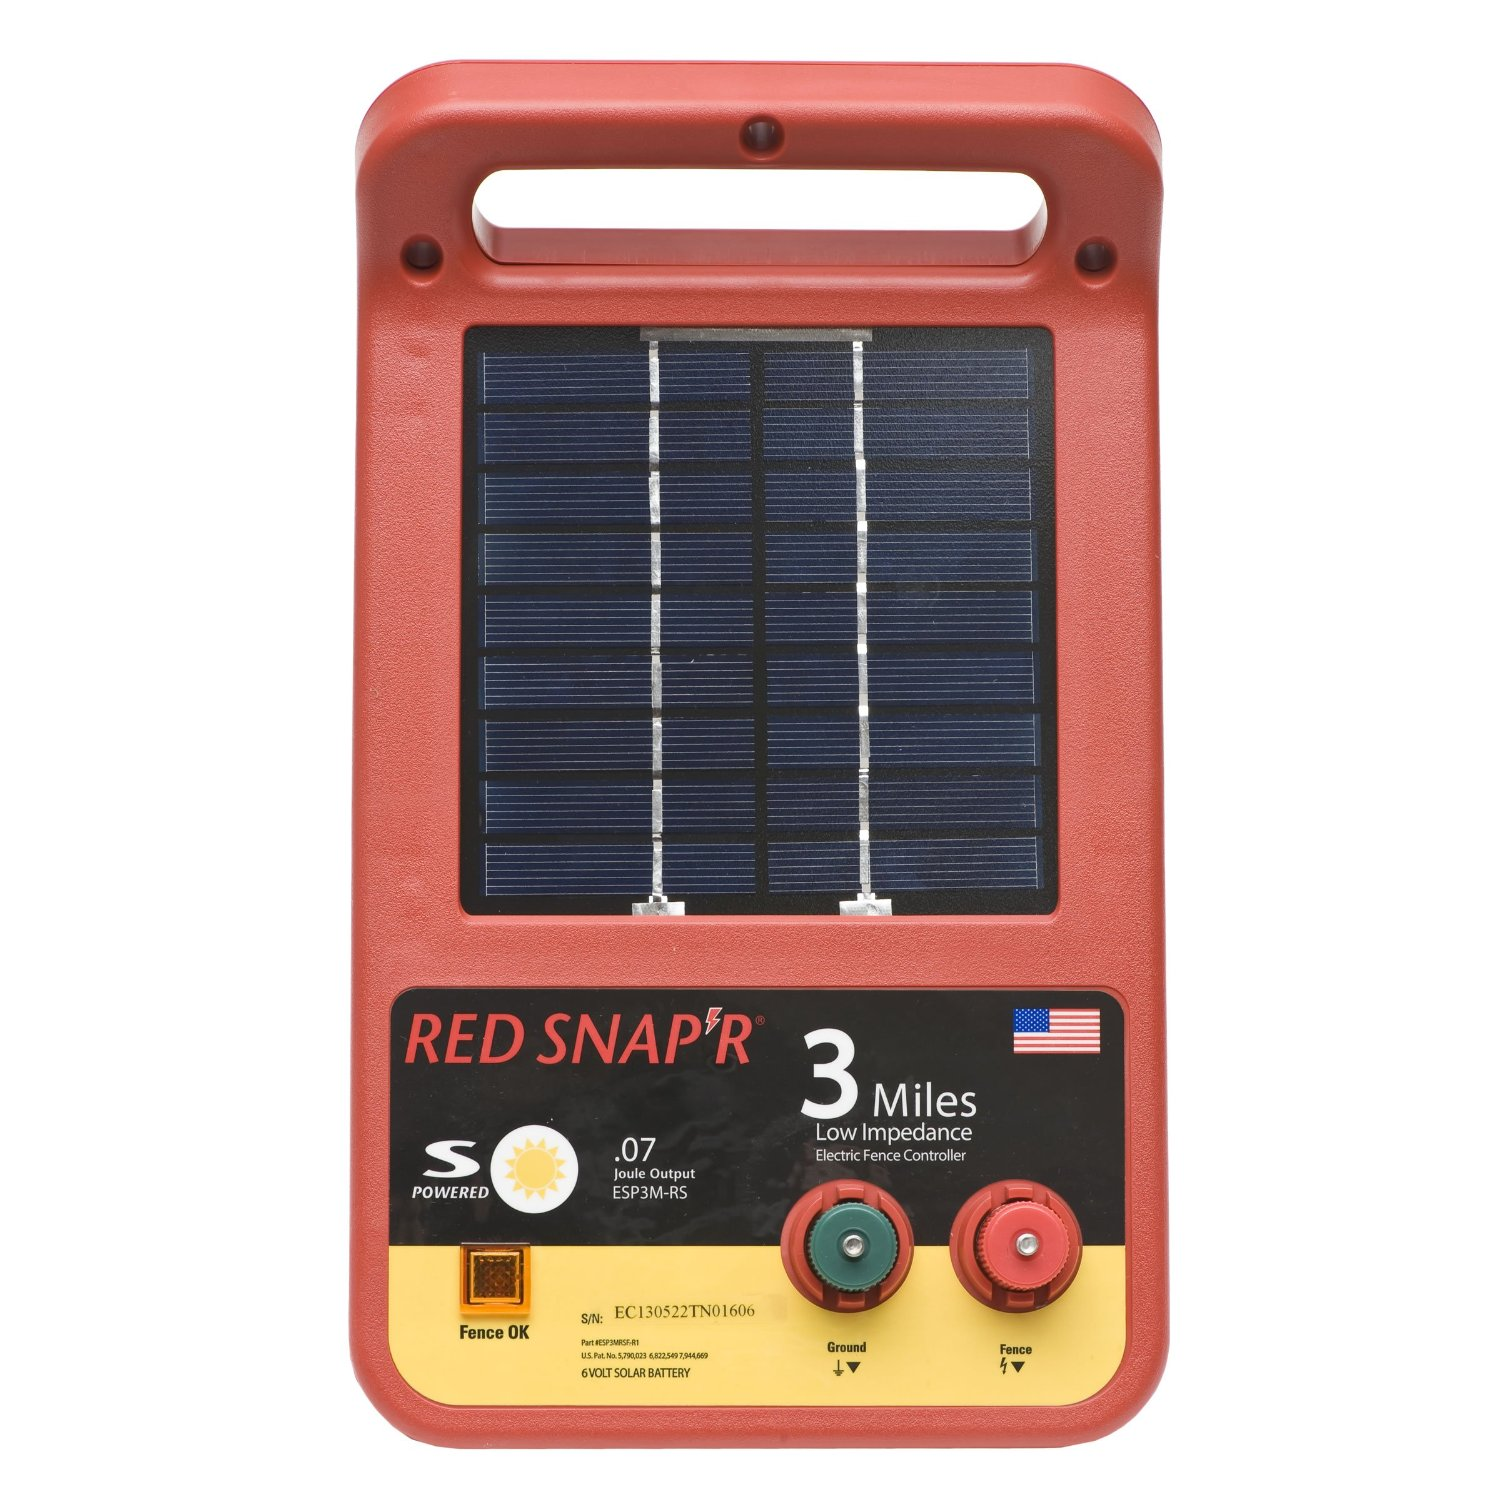 Electric Fence Control Panel : Red snap r esp m rs mile solar low impedance charger